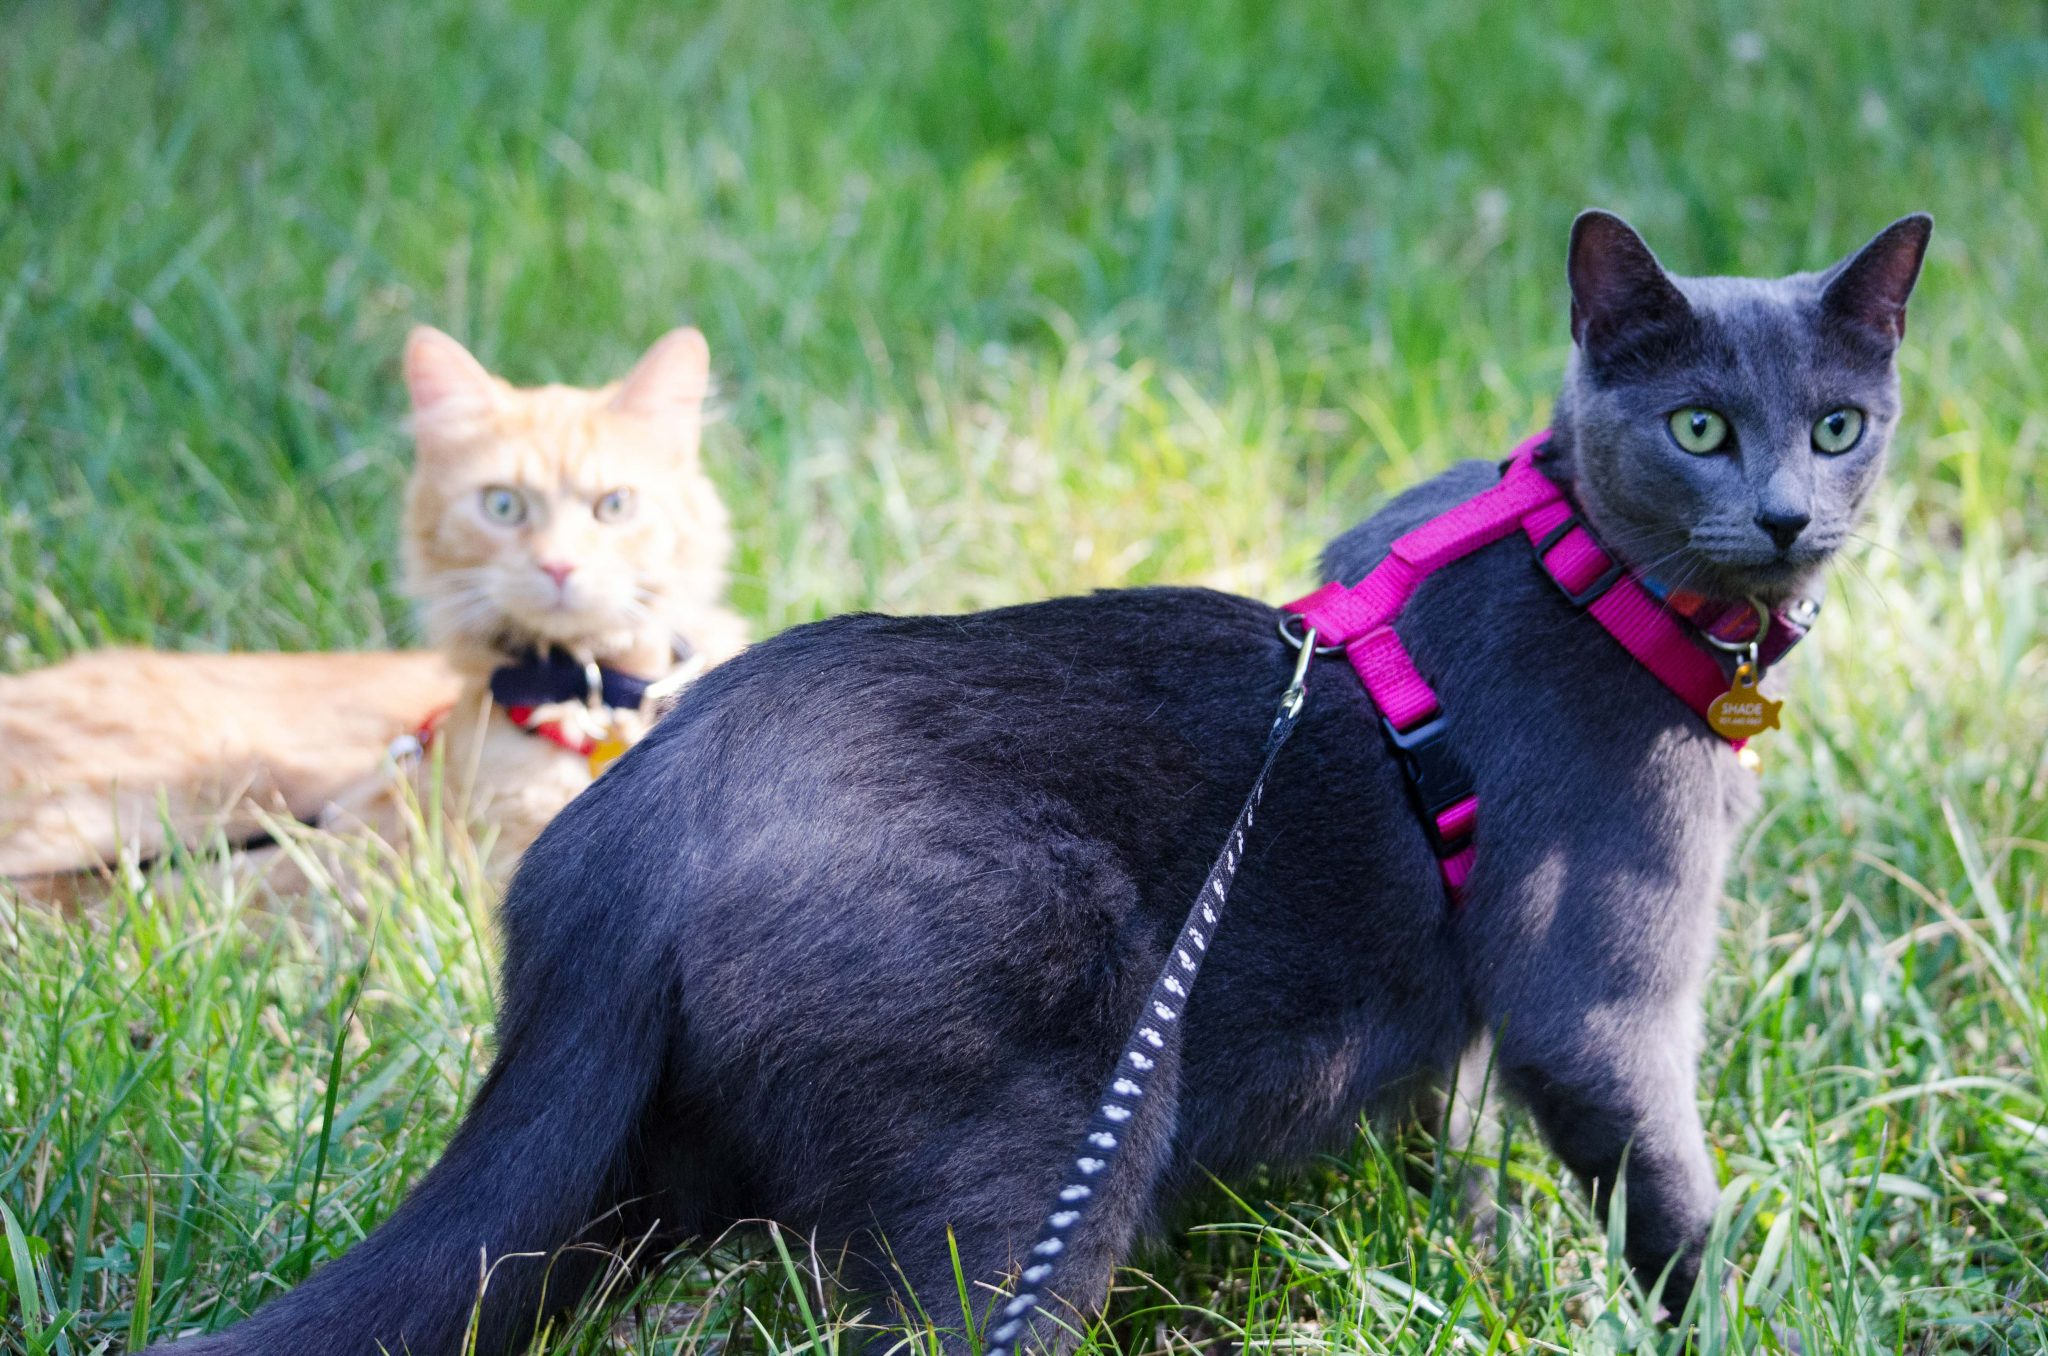 Cats Shade and Simba lounge in the grass